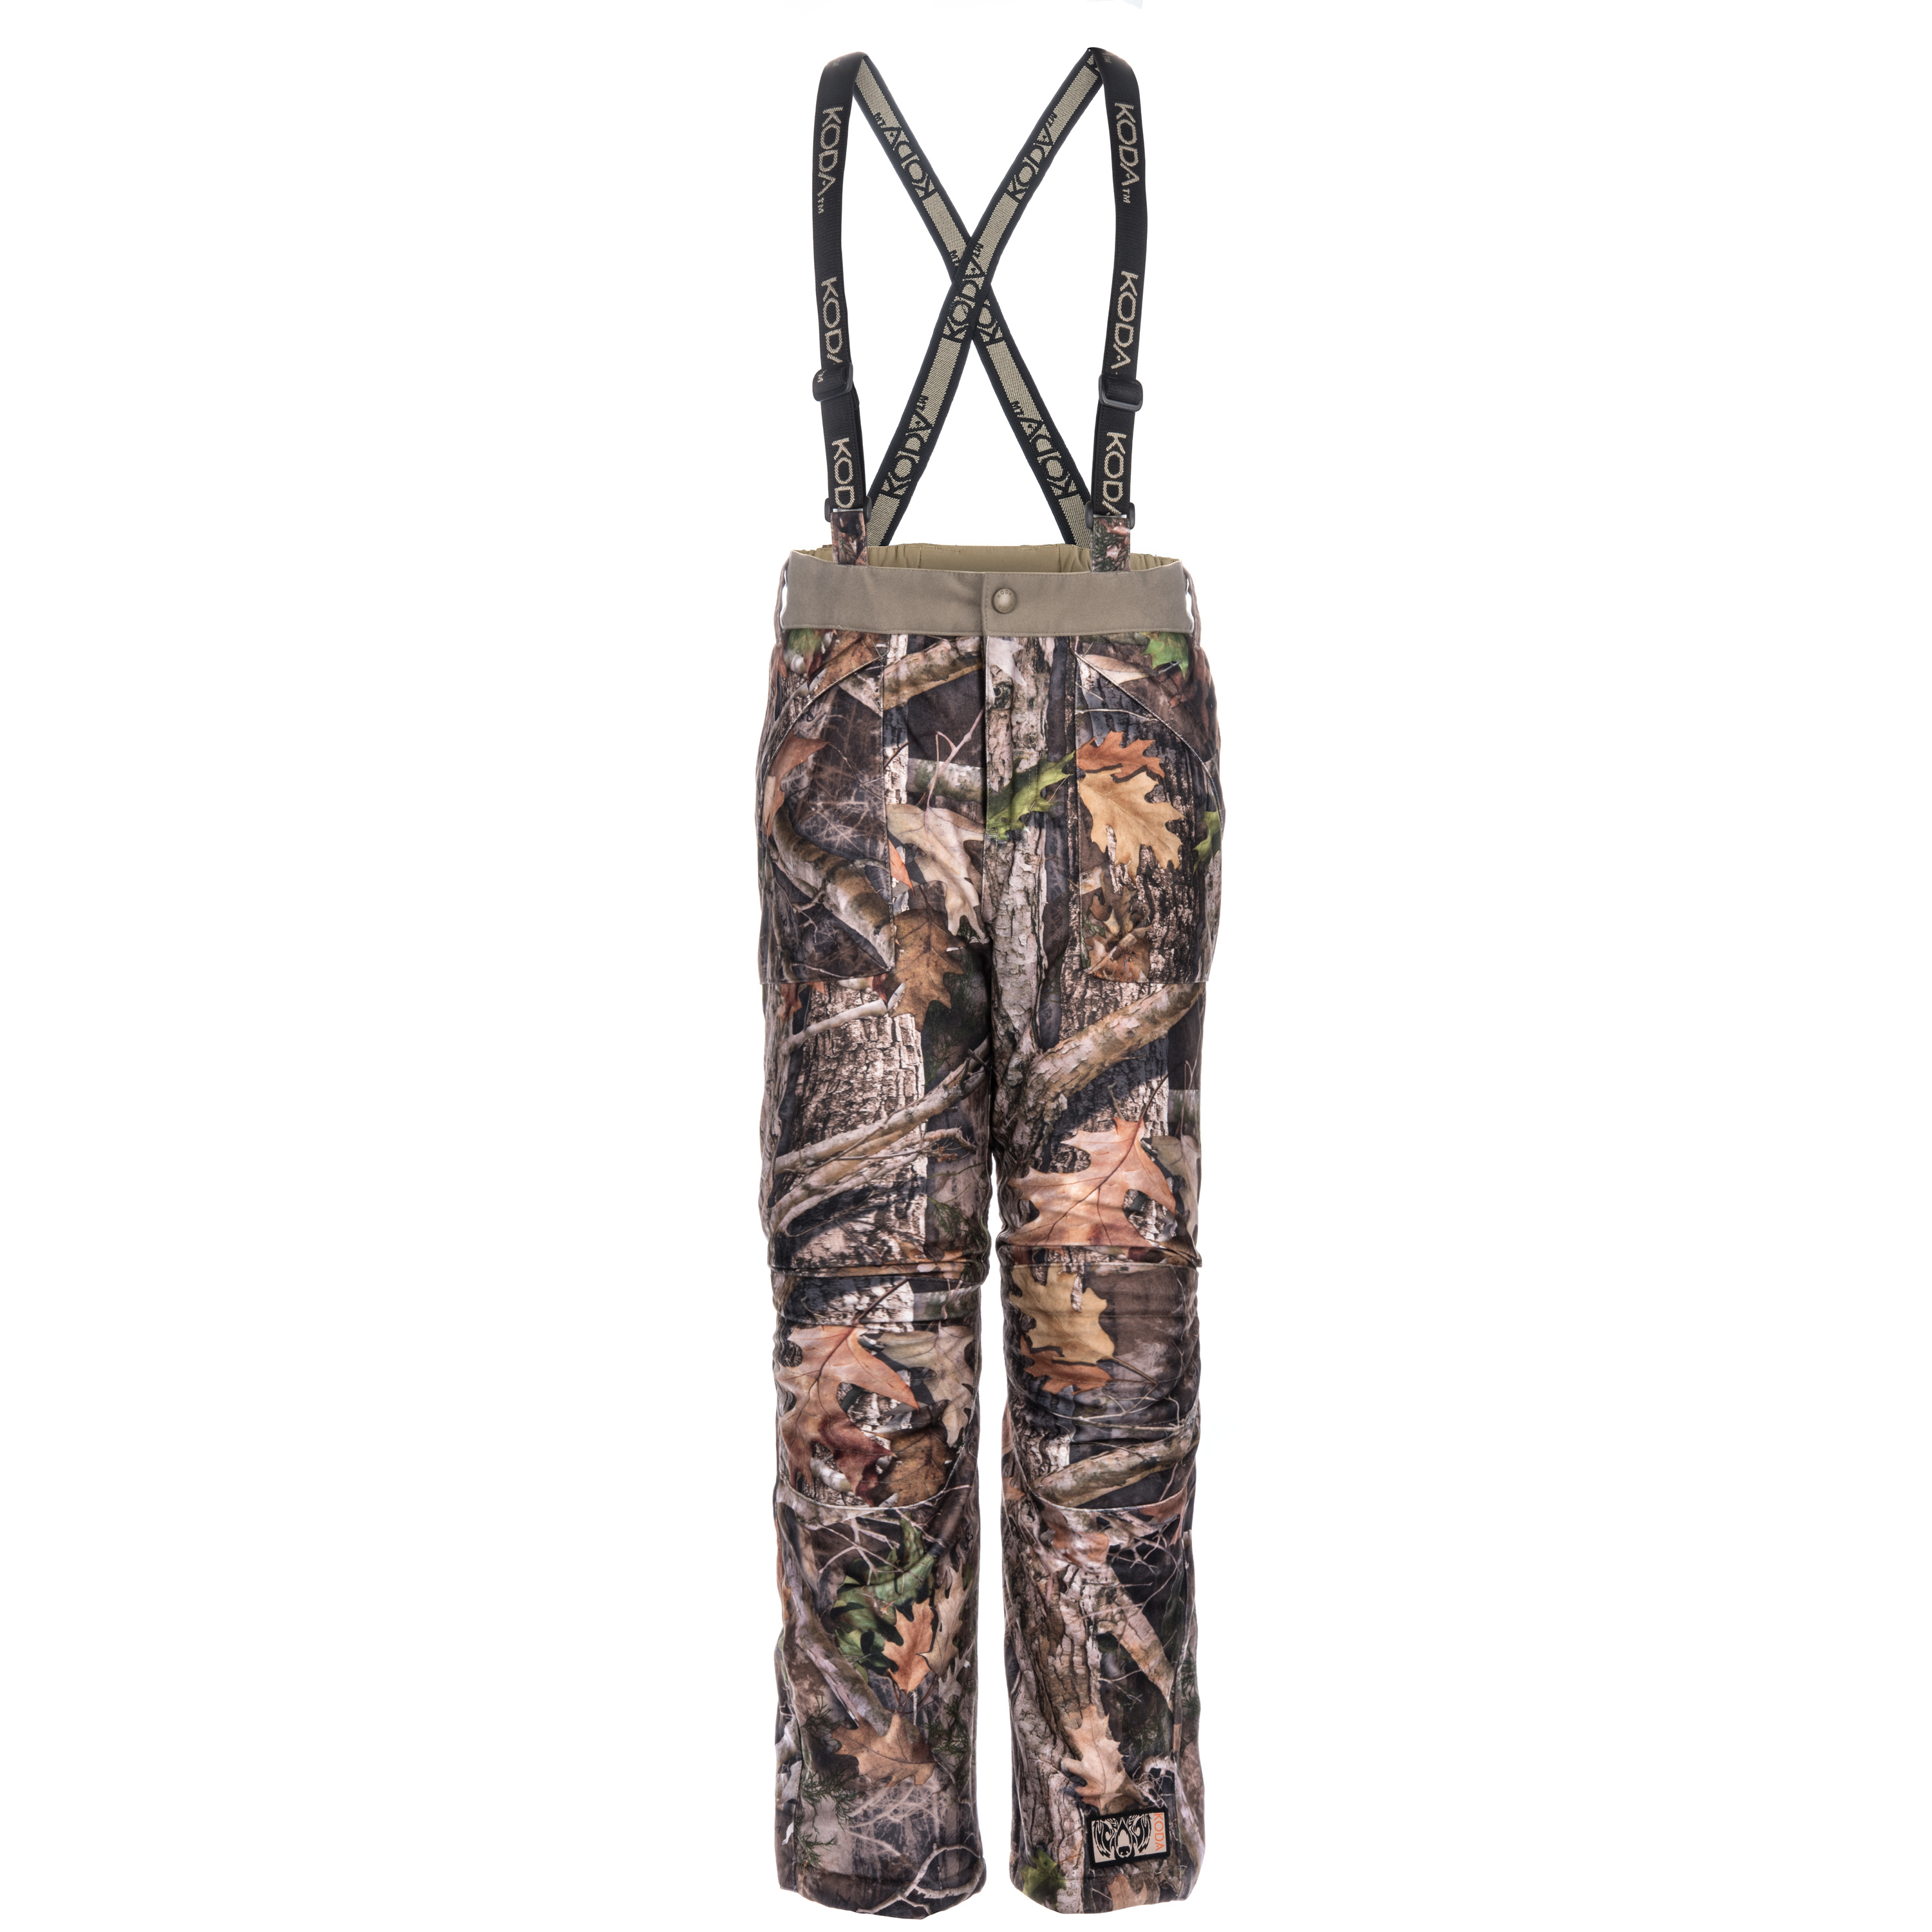 Koda Adventure Gear Kids True Timber Insulated Camo Hunting Suspender Pants, Kanati, S